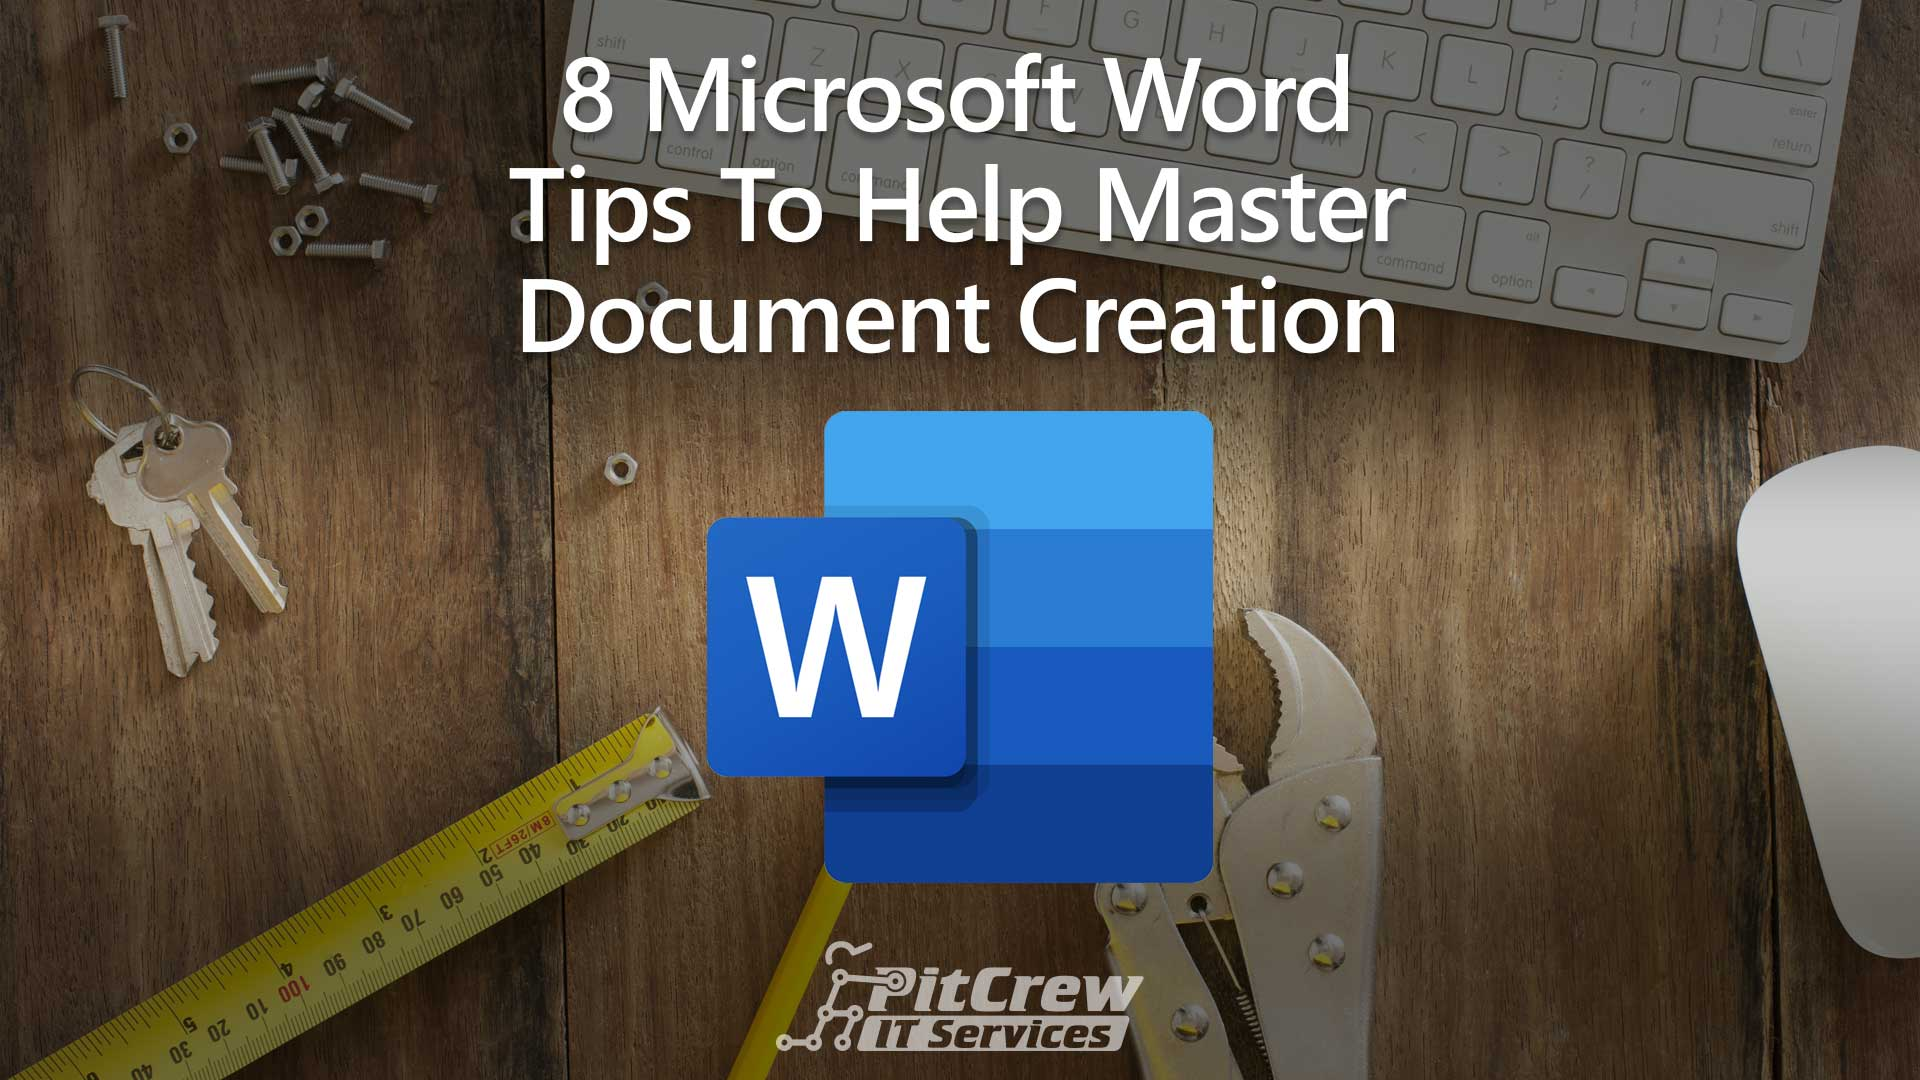 8 Microsoft Word Tips To Help Master Document Creation